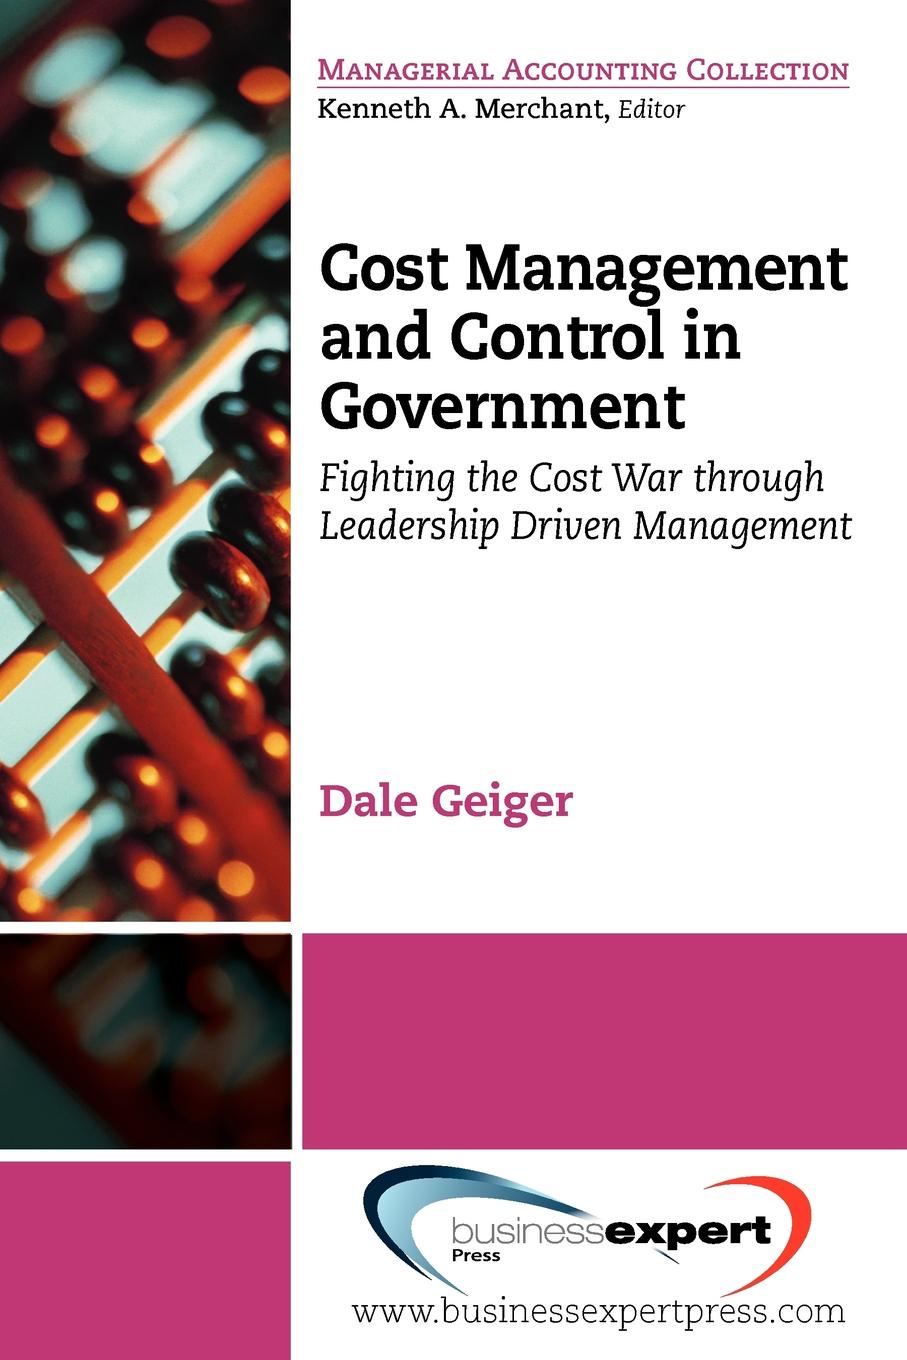 Dale Geiger Cost Management and Control in Government. A Proven, Practical Leadership Driven Management Approach to Fighting the Cost War in Government jo manion from management to leadership strategies for transforming health